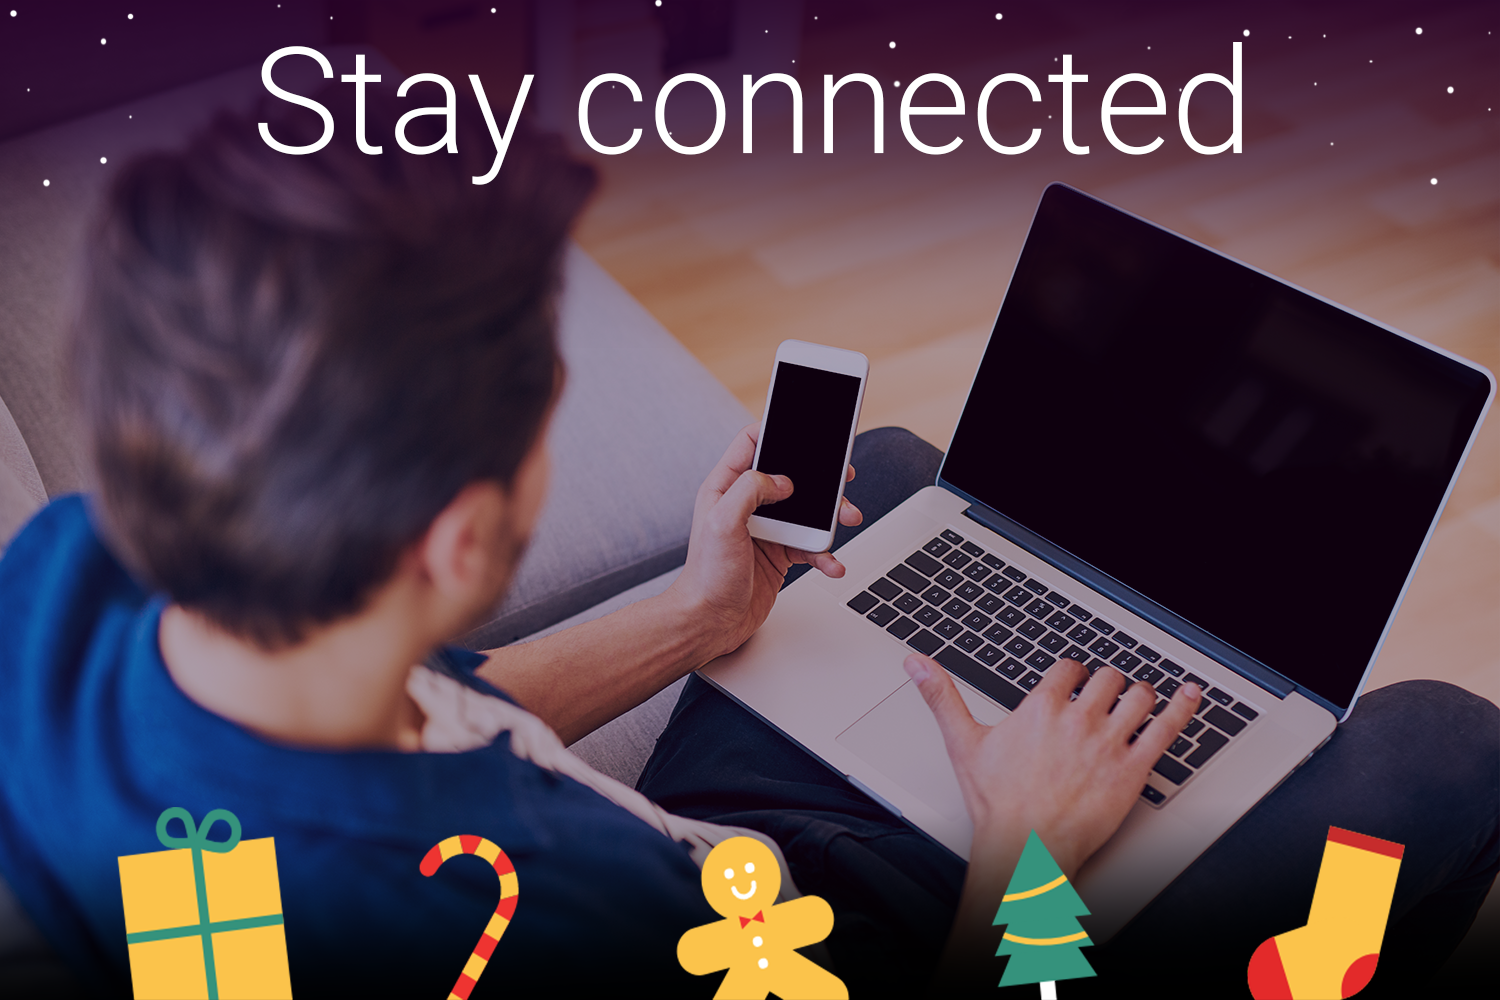 Stay connected with top tech offers